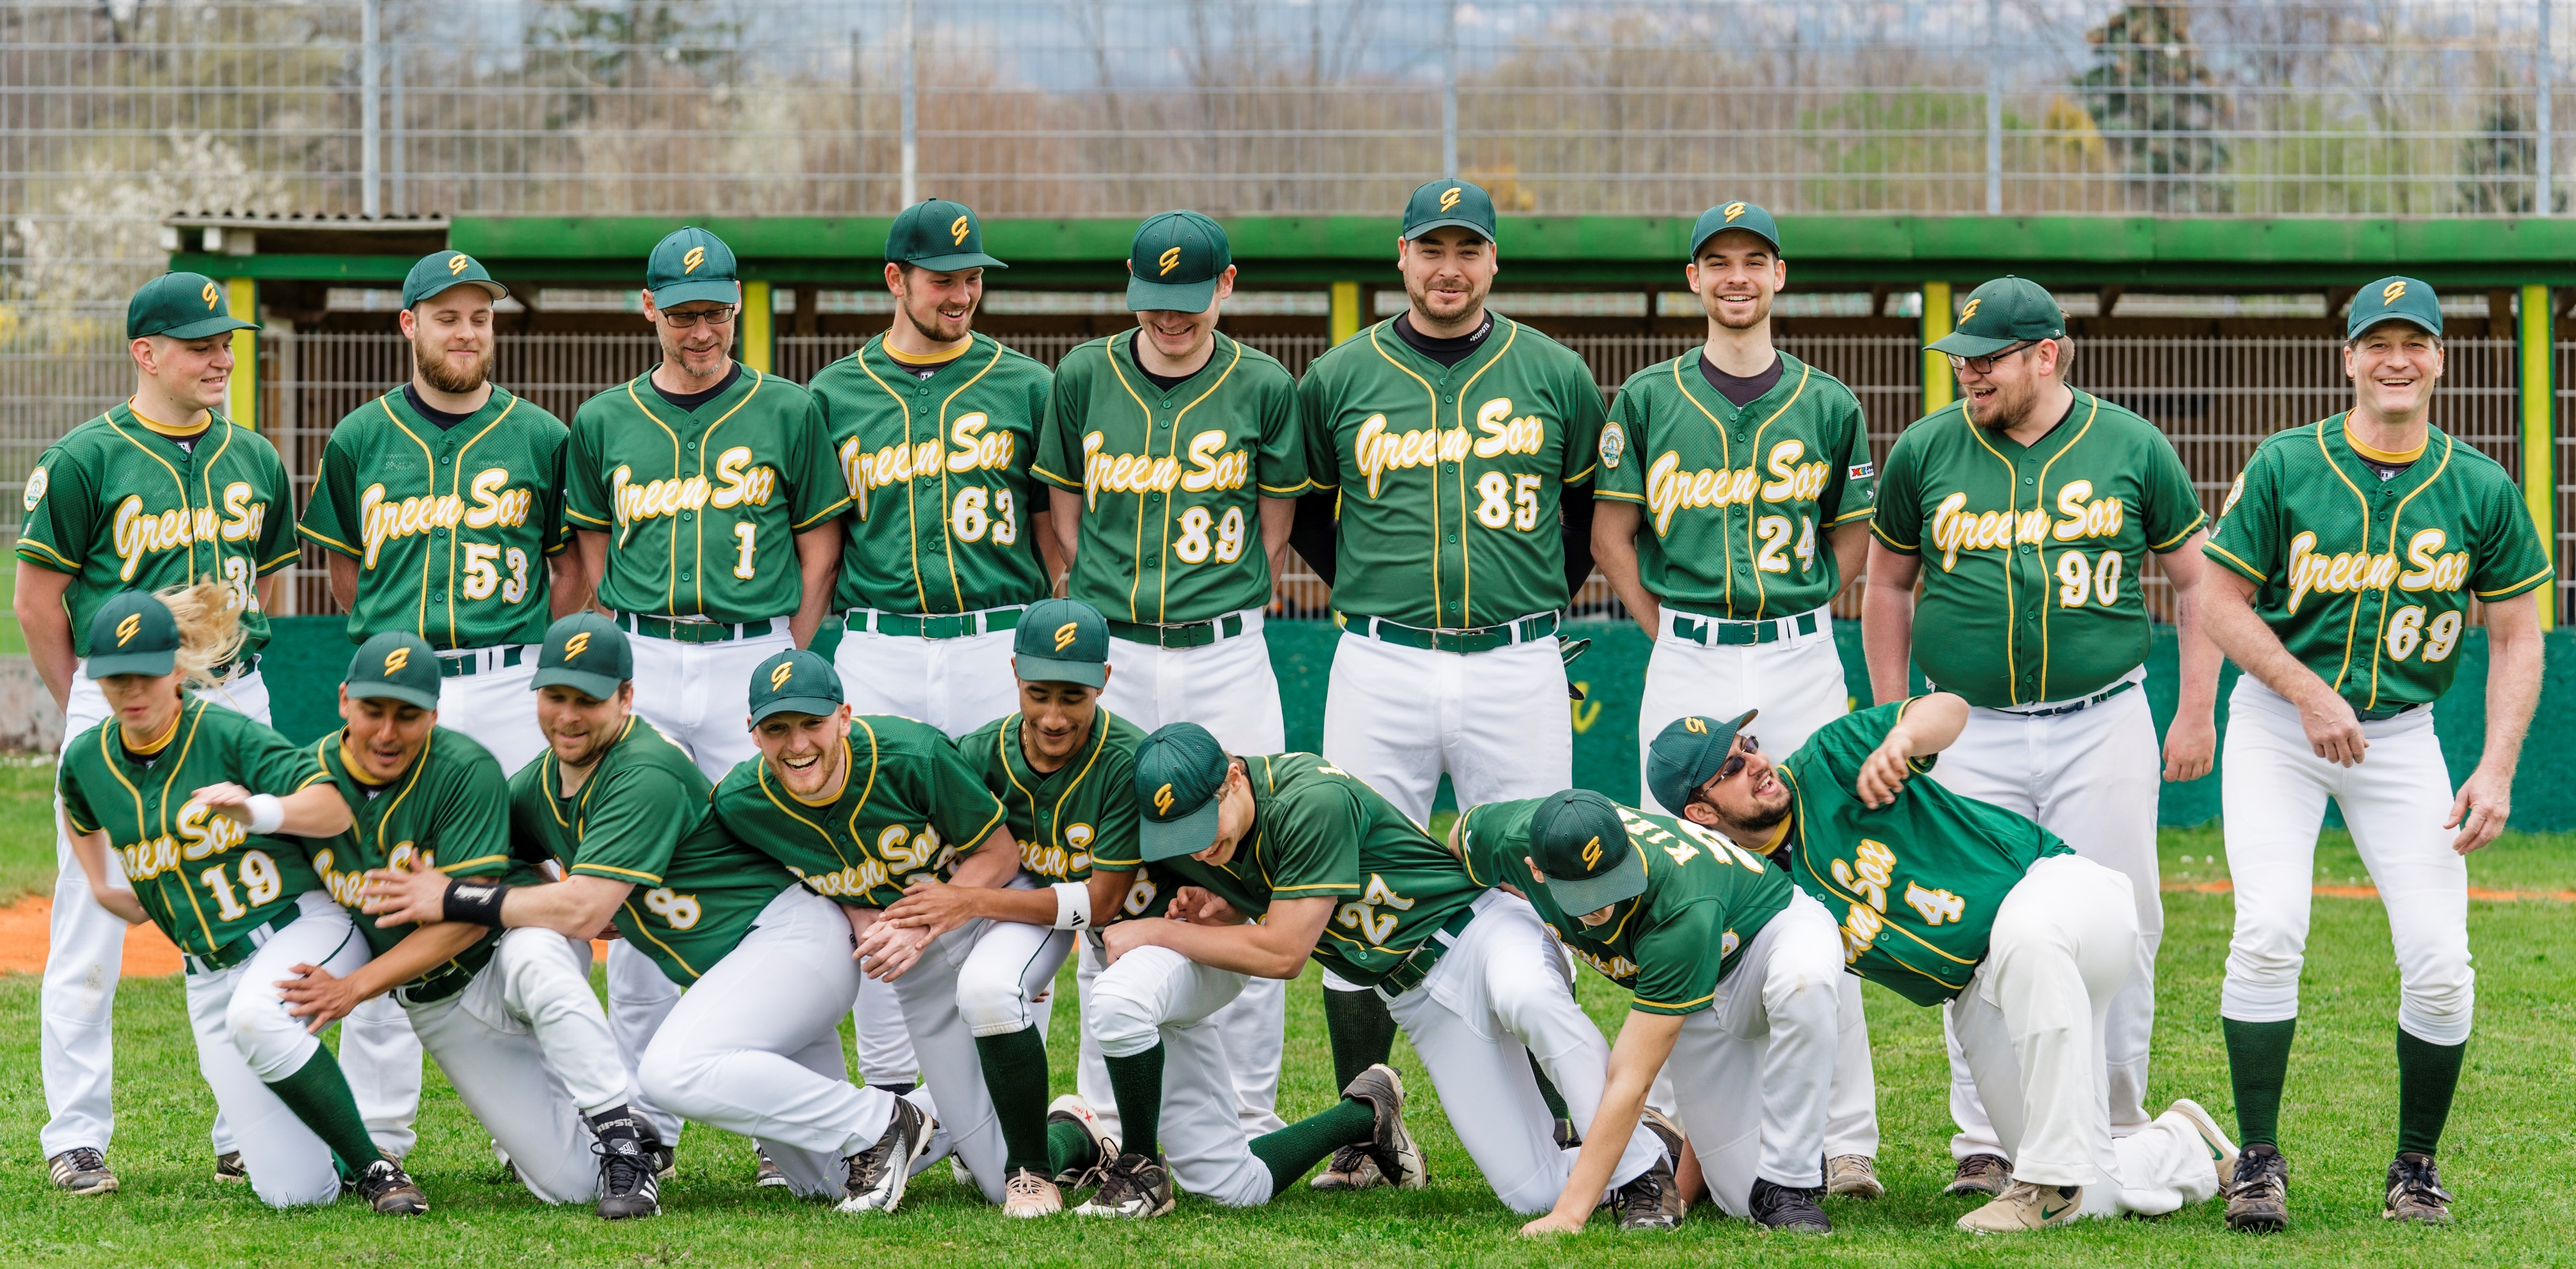 Greensox-7.jpg